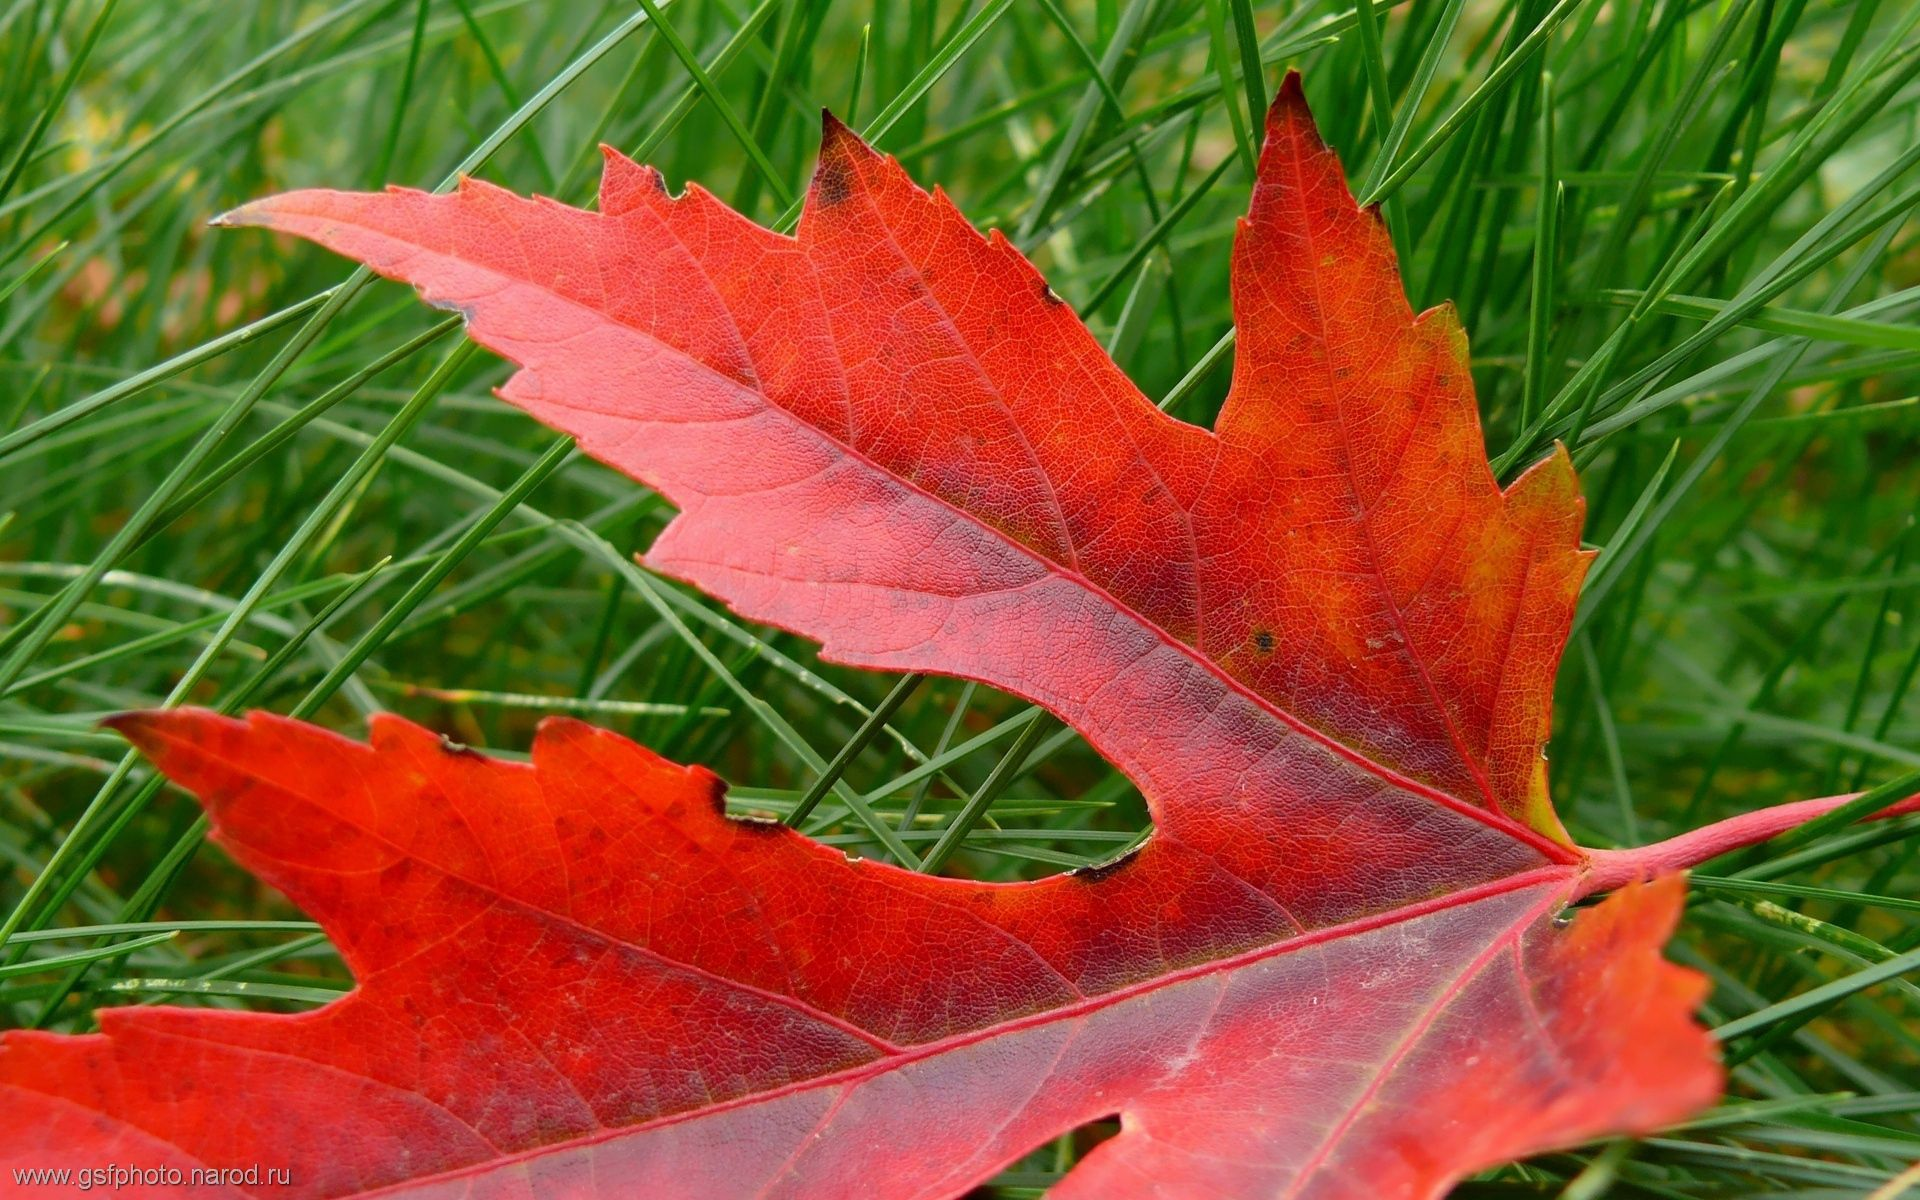 126057 download wallpaper Nature, Sheet, Leaf, Autumn, Maple, Dry, Fallen screensavers and pictures for free